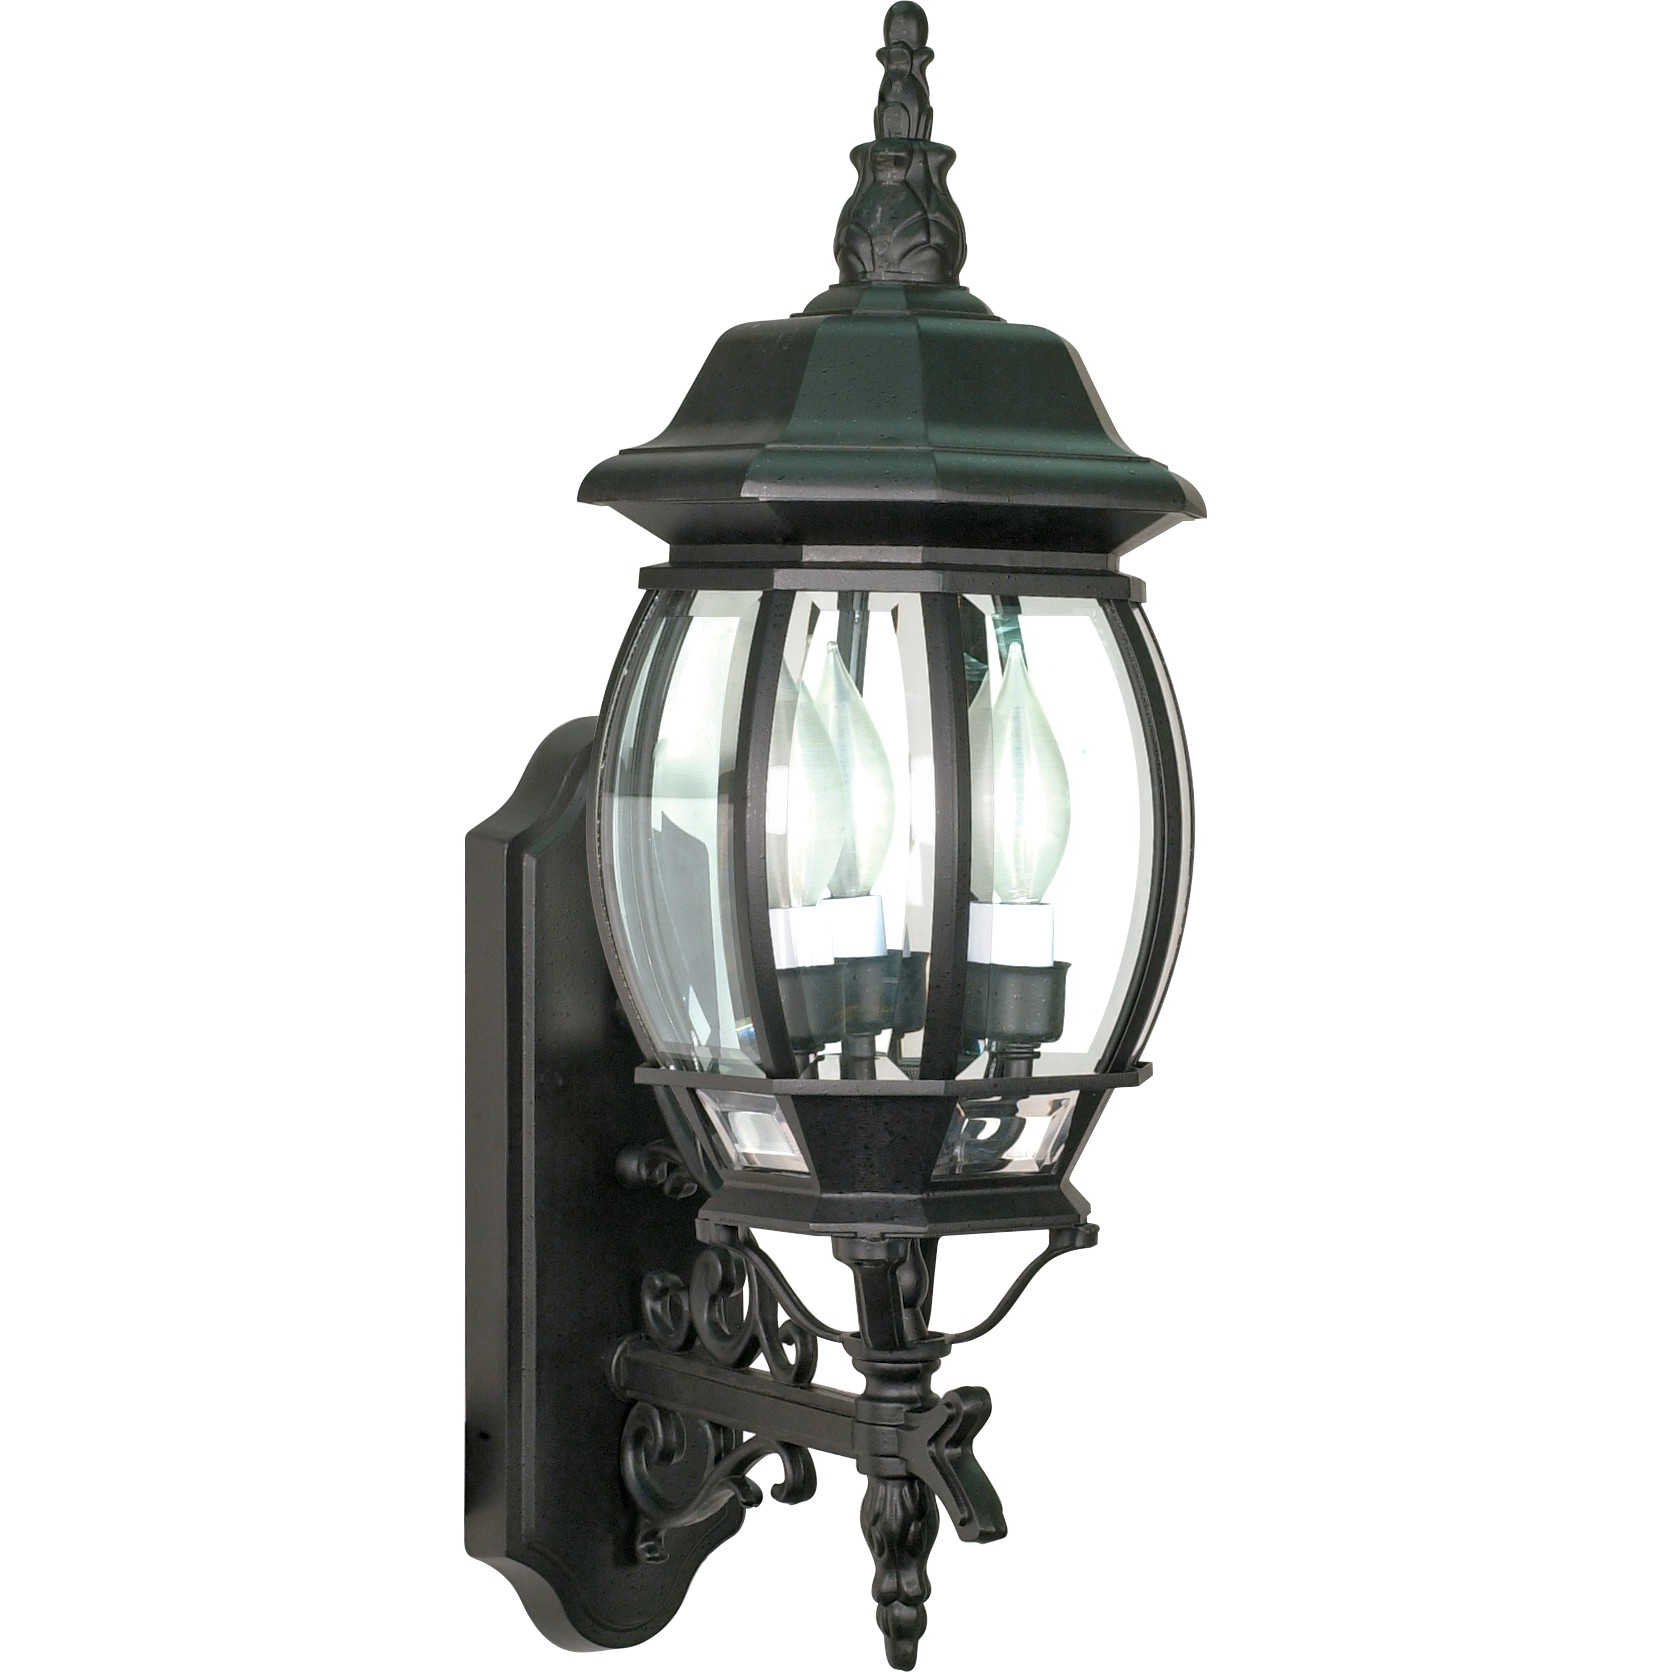 Entertainment : Nuvo Light Large Outdoor Wall Lantern Central Park Within Well Known Outdoor Wall Lighting At Houzz (View 8 of 20)